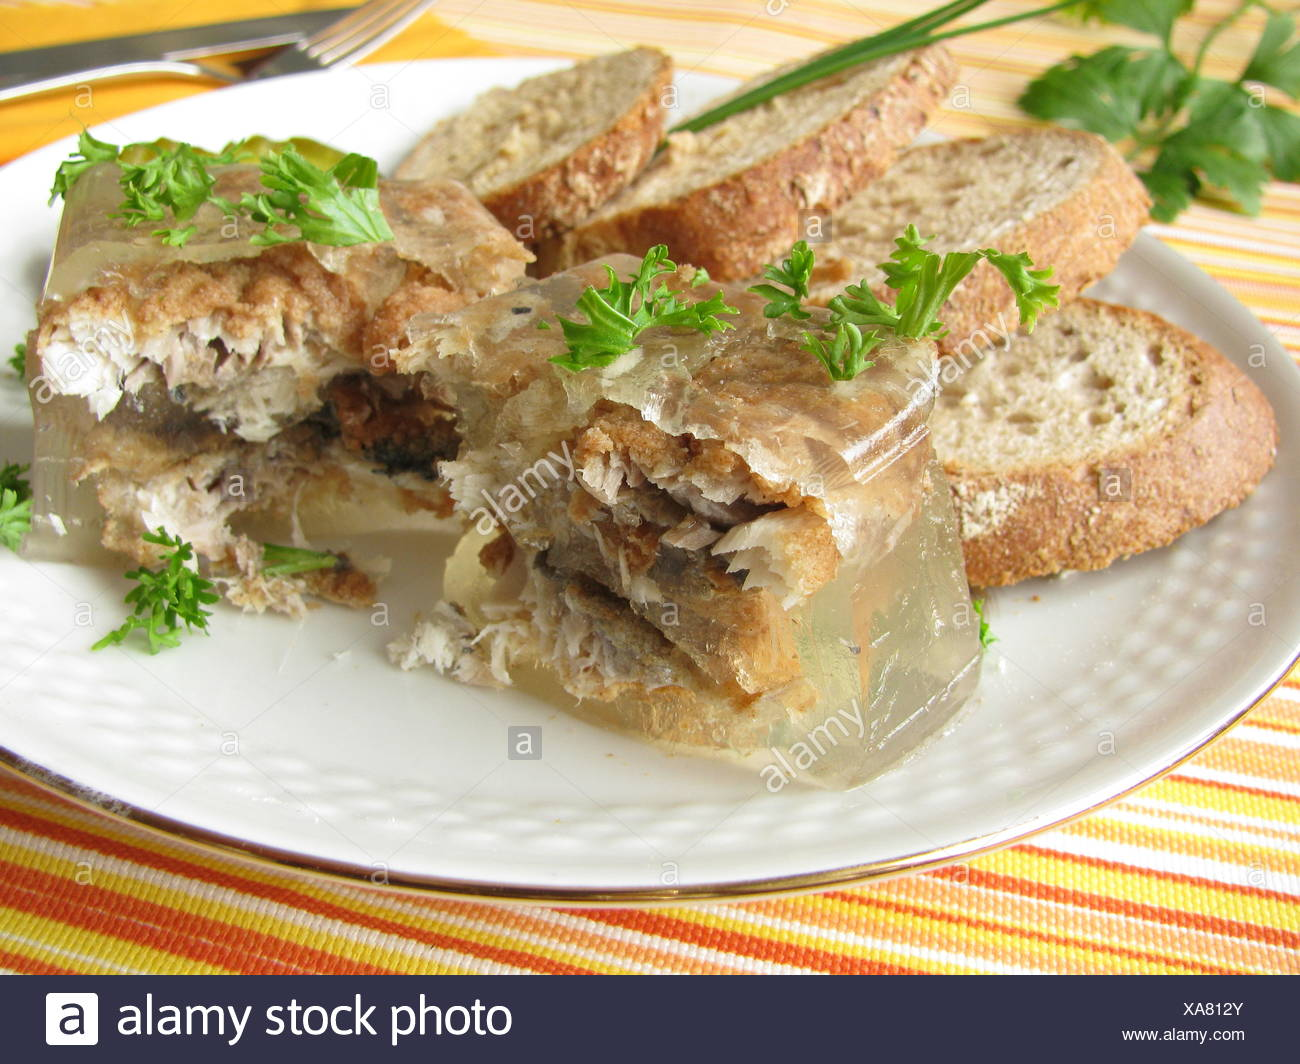 Aspic Stock Photos & Aspic Stock Images - Alamy